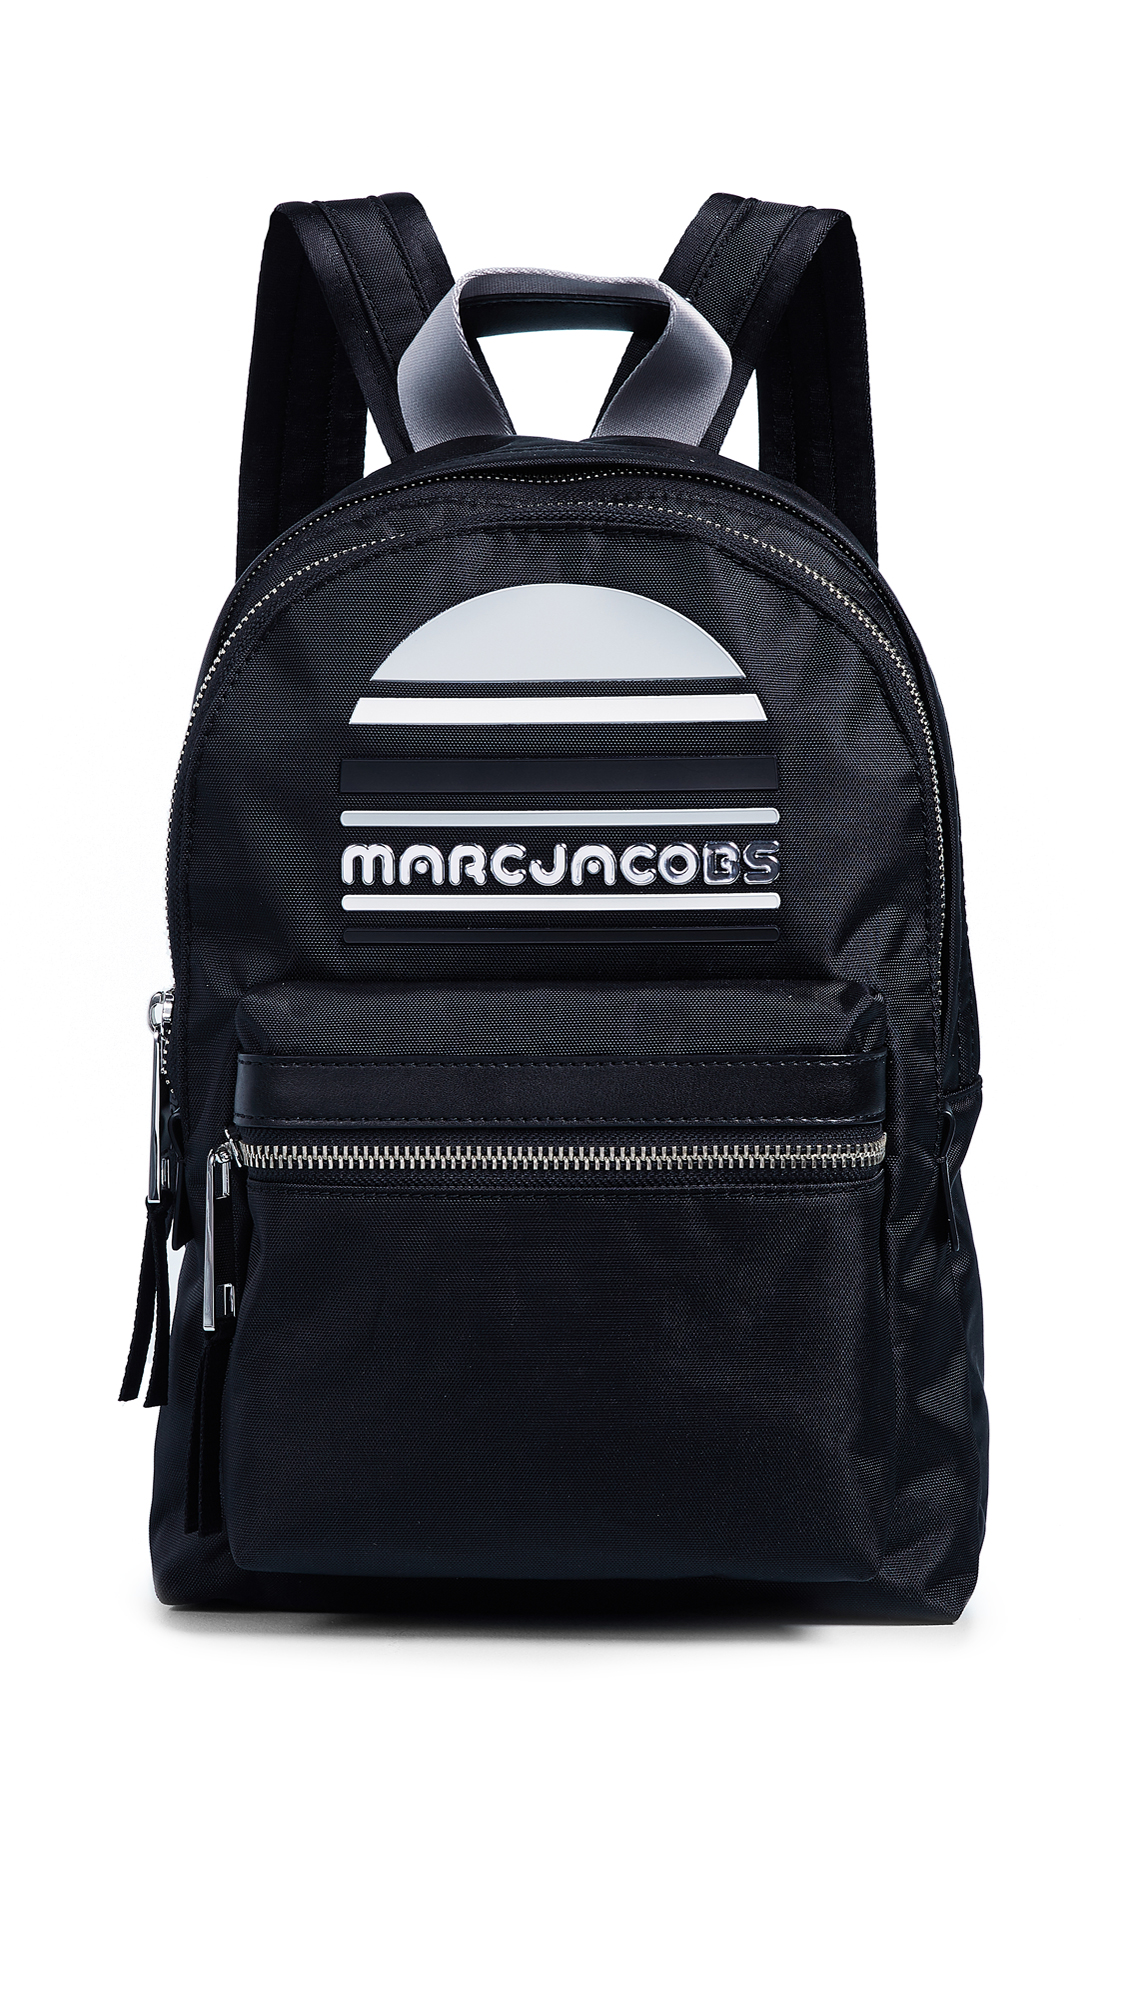 Medium Sport Trek Backpack - Black